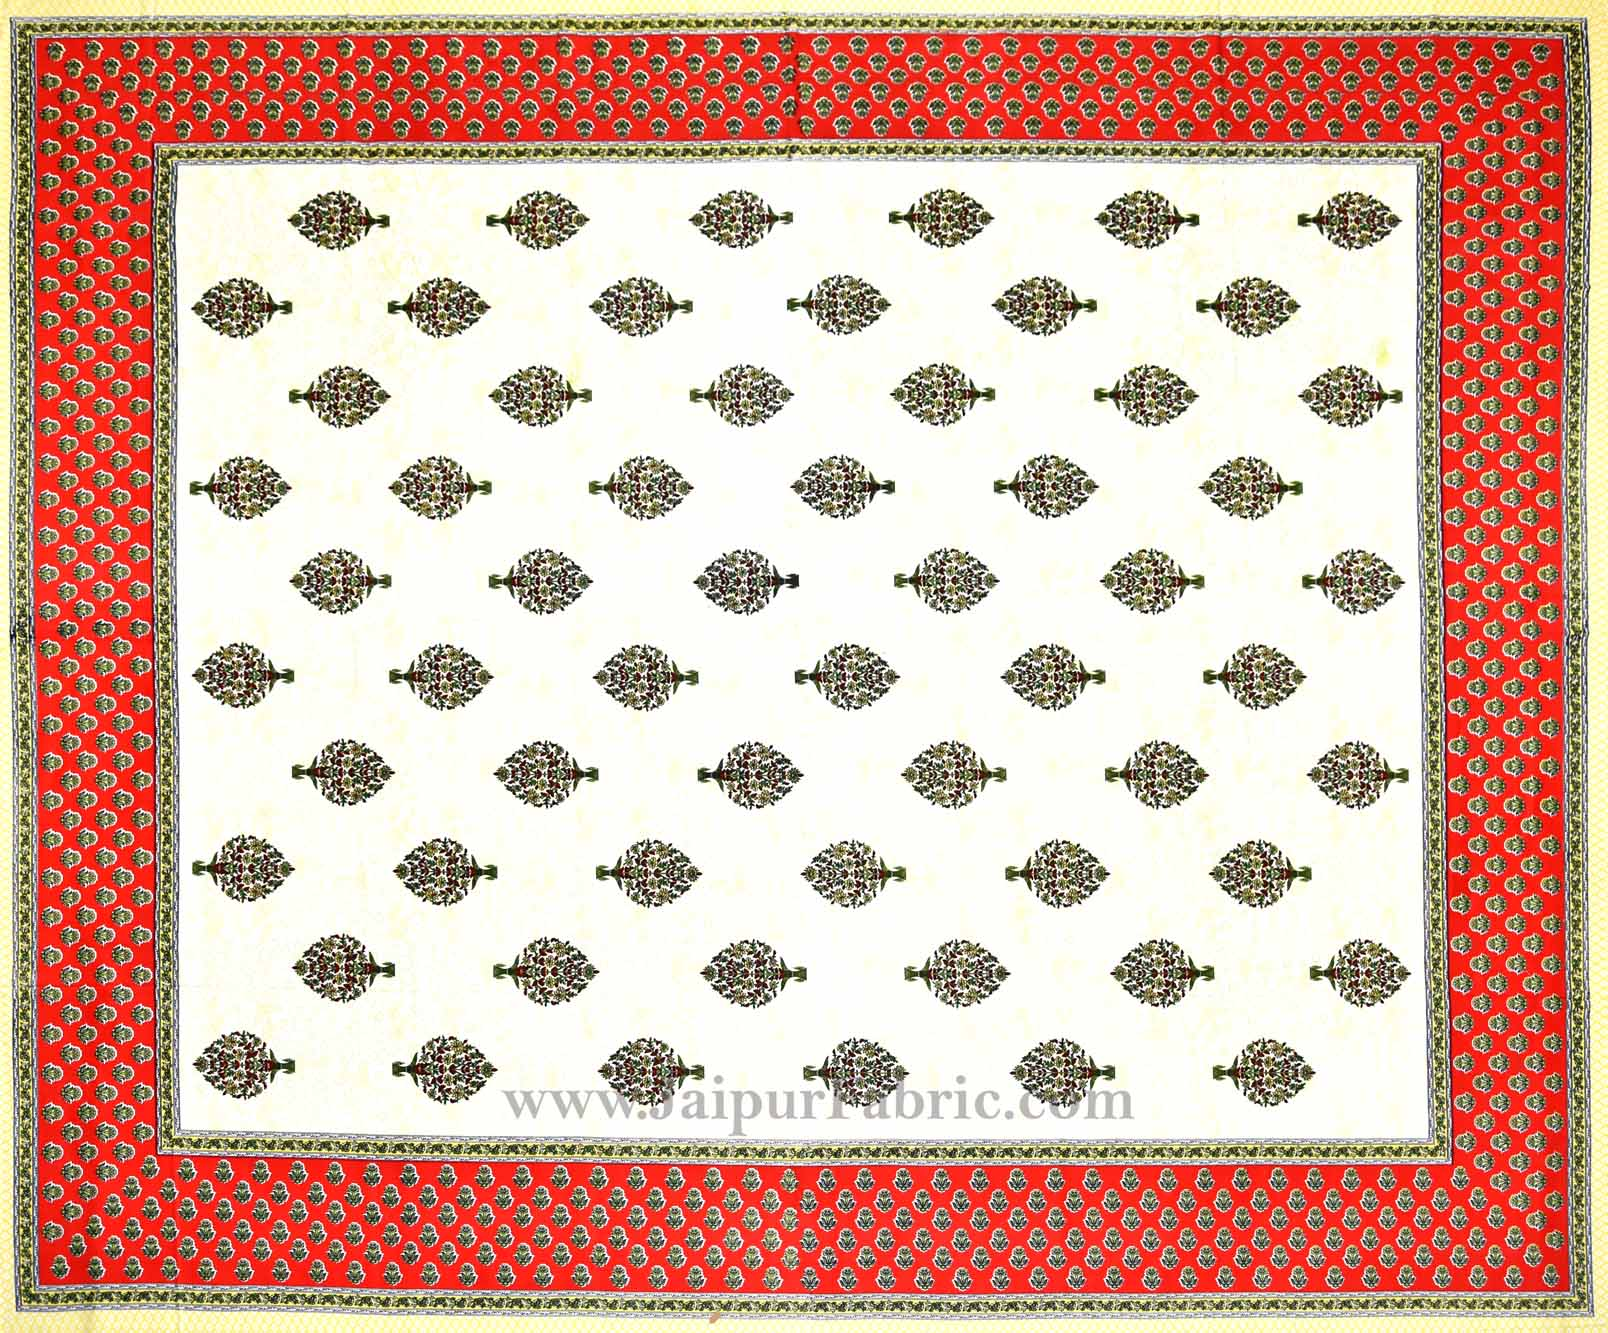 Gorgeous Glaze cotton Red Paan Double Bedsheet